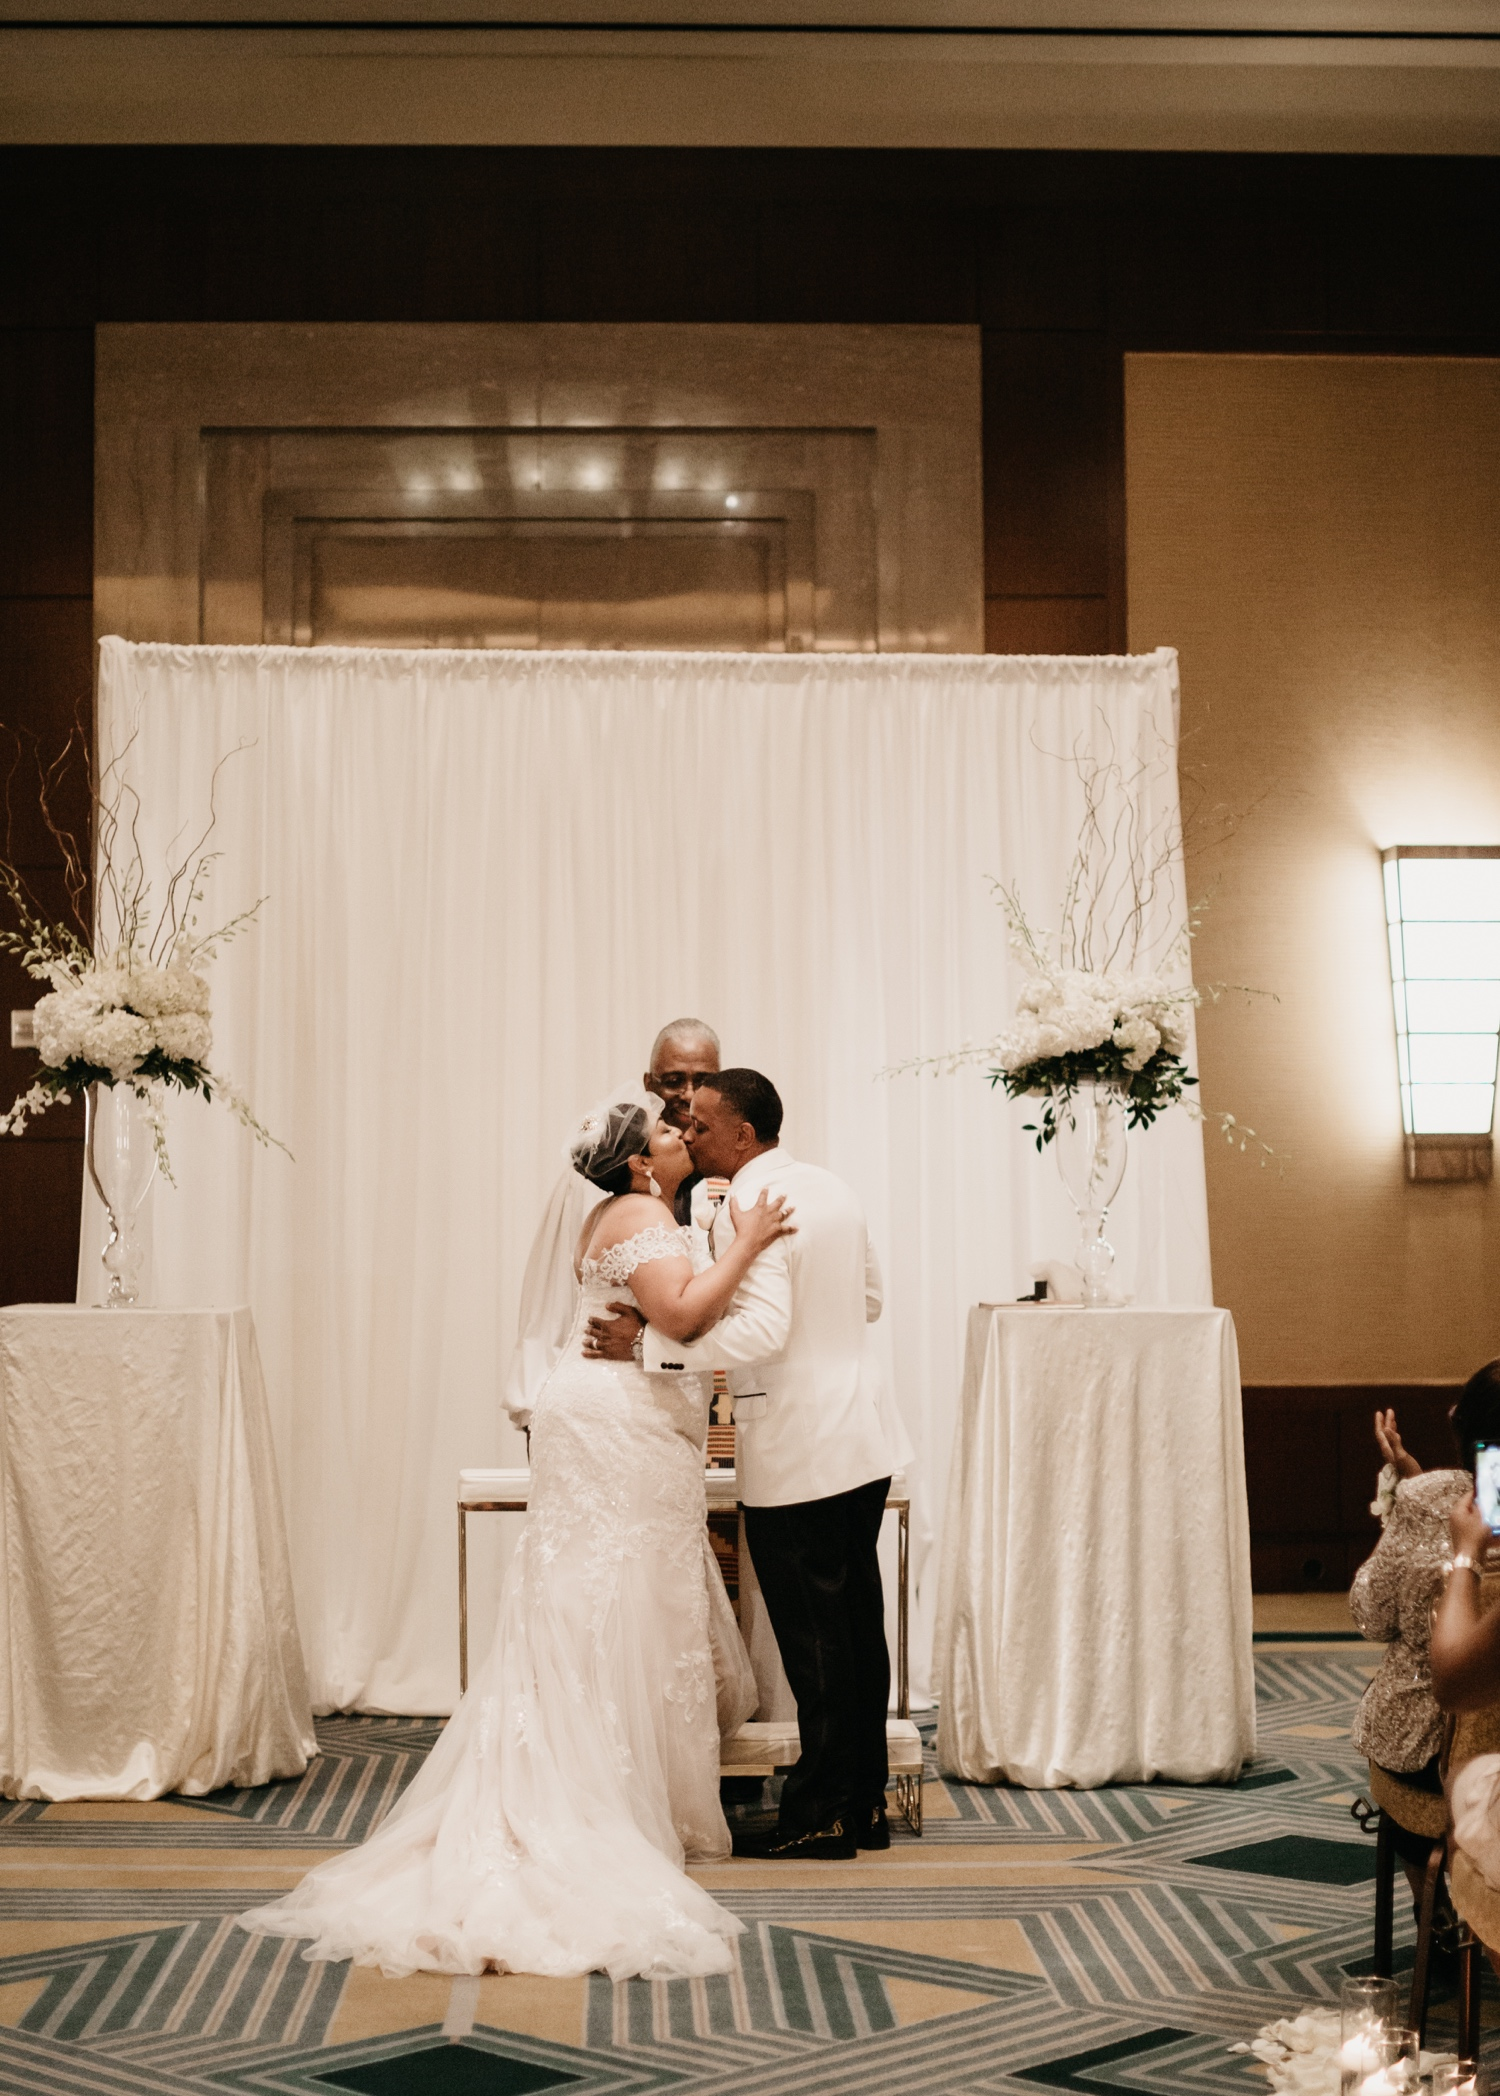 37_Ritz-carlton-wedding_charlotteNC_charlotteweddingphotographer.jpg